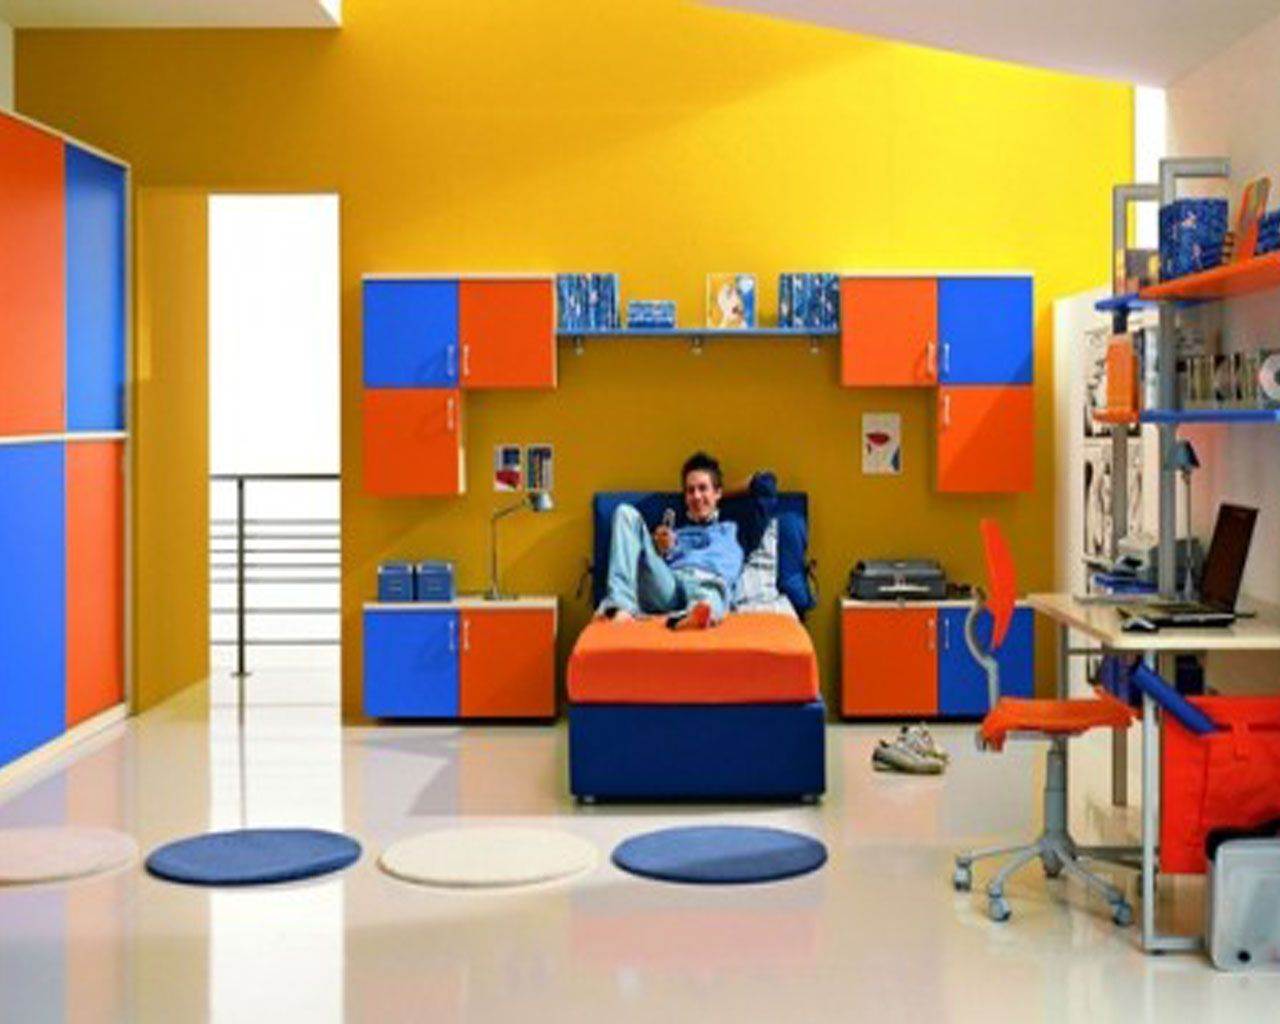 Bedroom wall paint ideas for boys - Boys Bedroom Idea With Yellow Wall Paint Color And Orange Blue Cabinets And